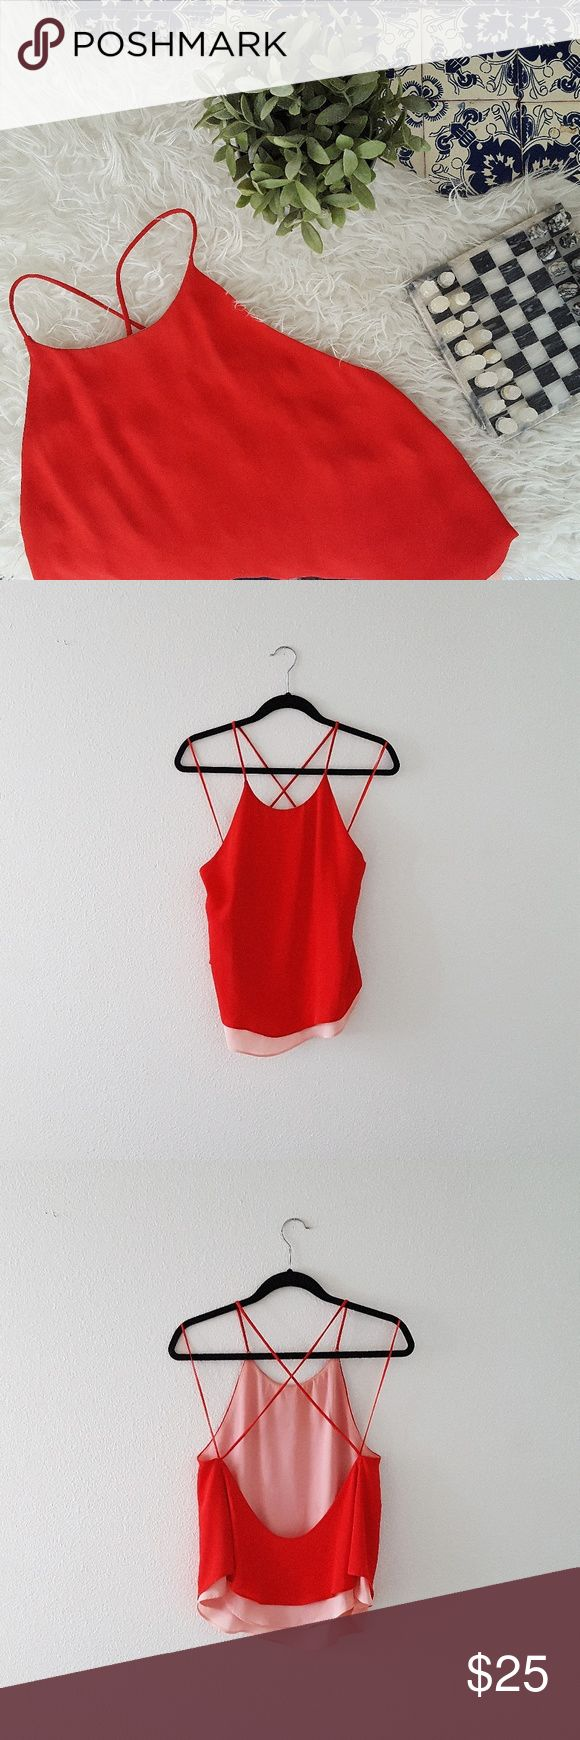 ZARA red and pink strappy top with crossed back Absolutely gorgeous! Good condition, just some minor  normal wear from stains. Please let me know if you have any questions or want to make an offer 💕💕💕 Zara Tops Blouses